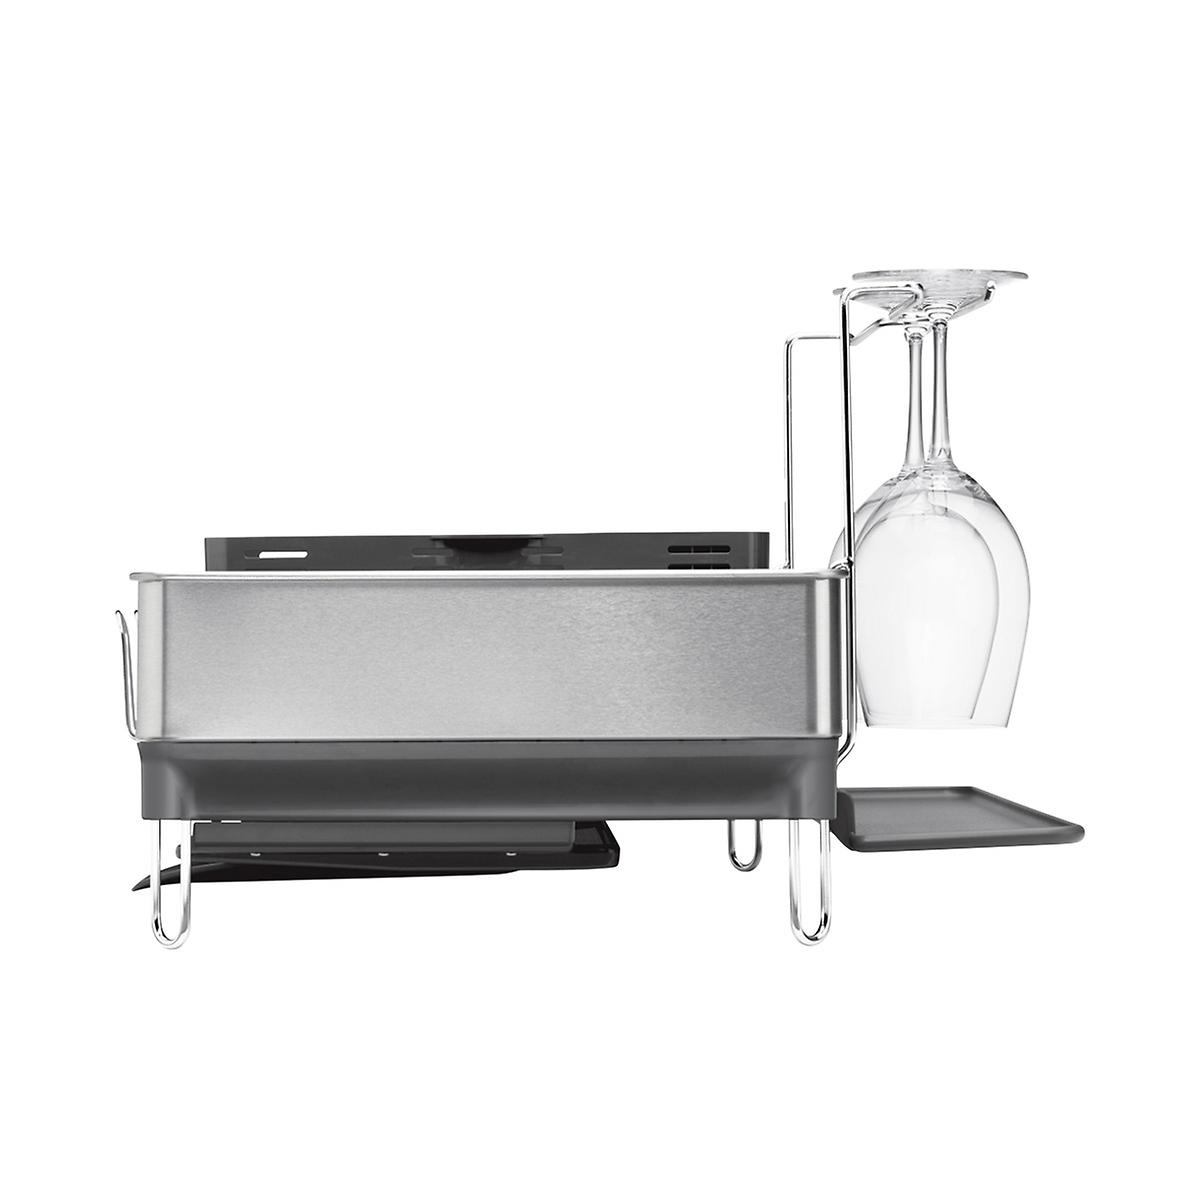 dish rack simplehuman stainless steel frame dish rack the container store. Black Bedroom Furniture Sets. Home Design Ideas